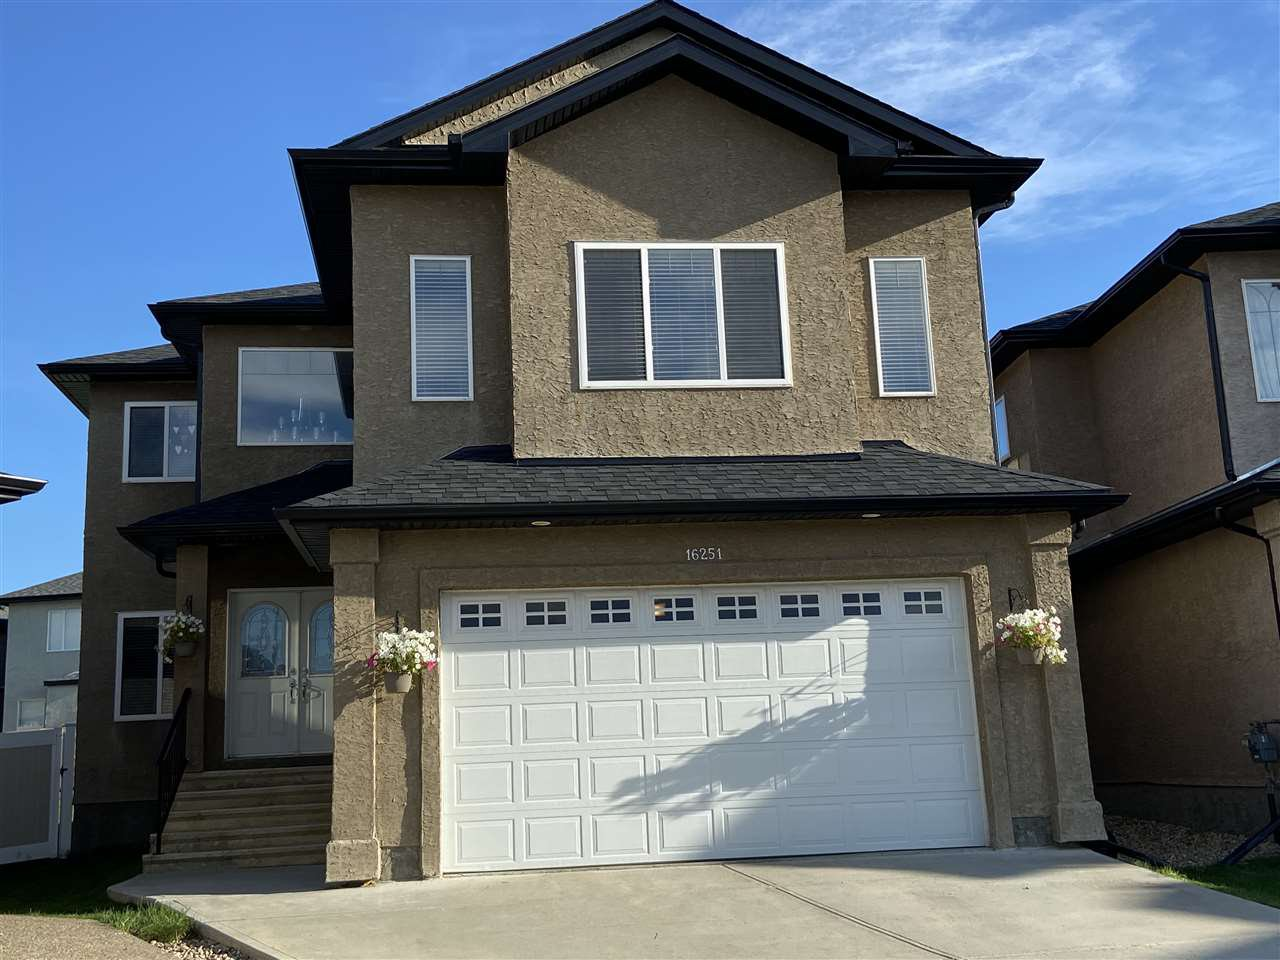 Main Photo: 16251 135 Street NW in Edmonton: Zone 27 House for sale : MLS®# E4209282